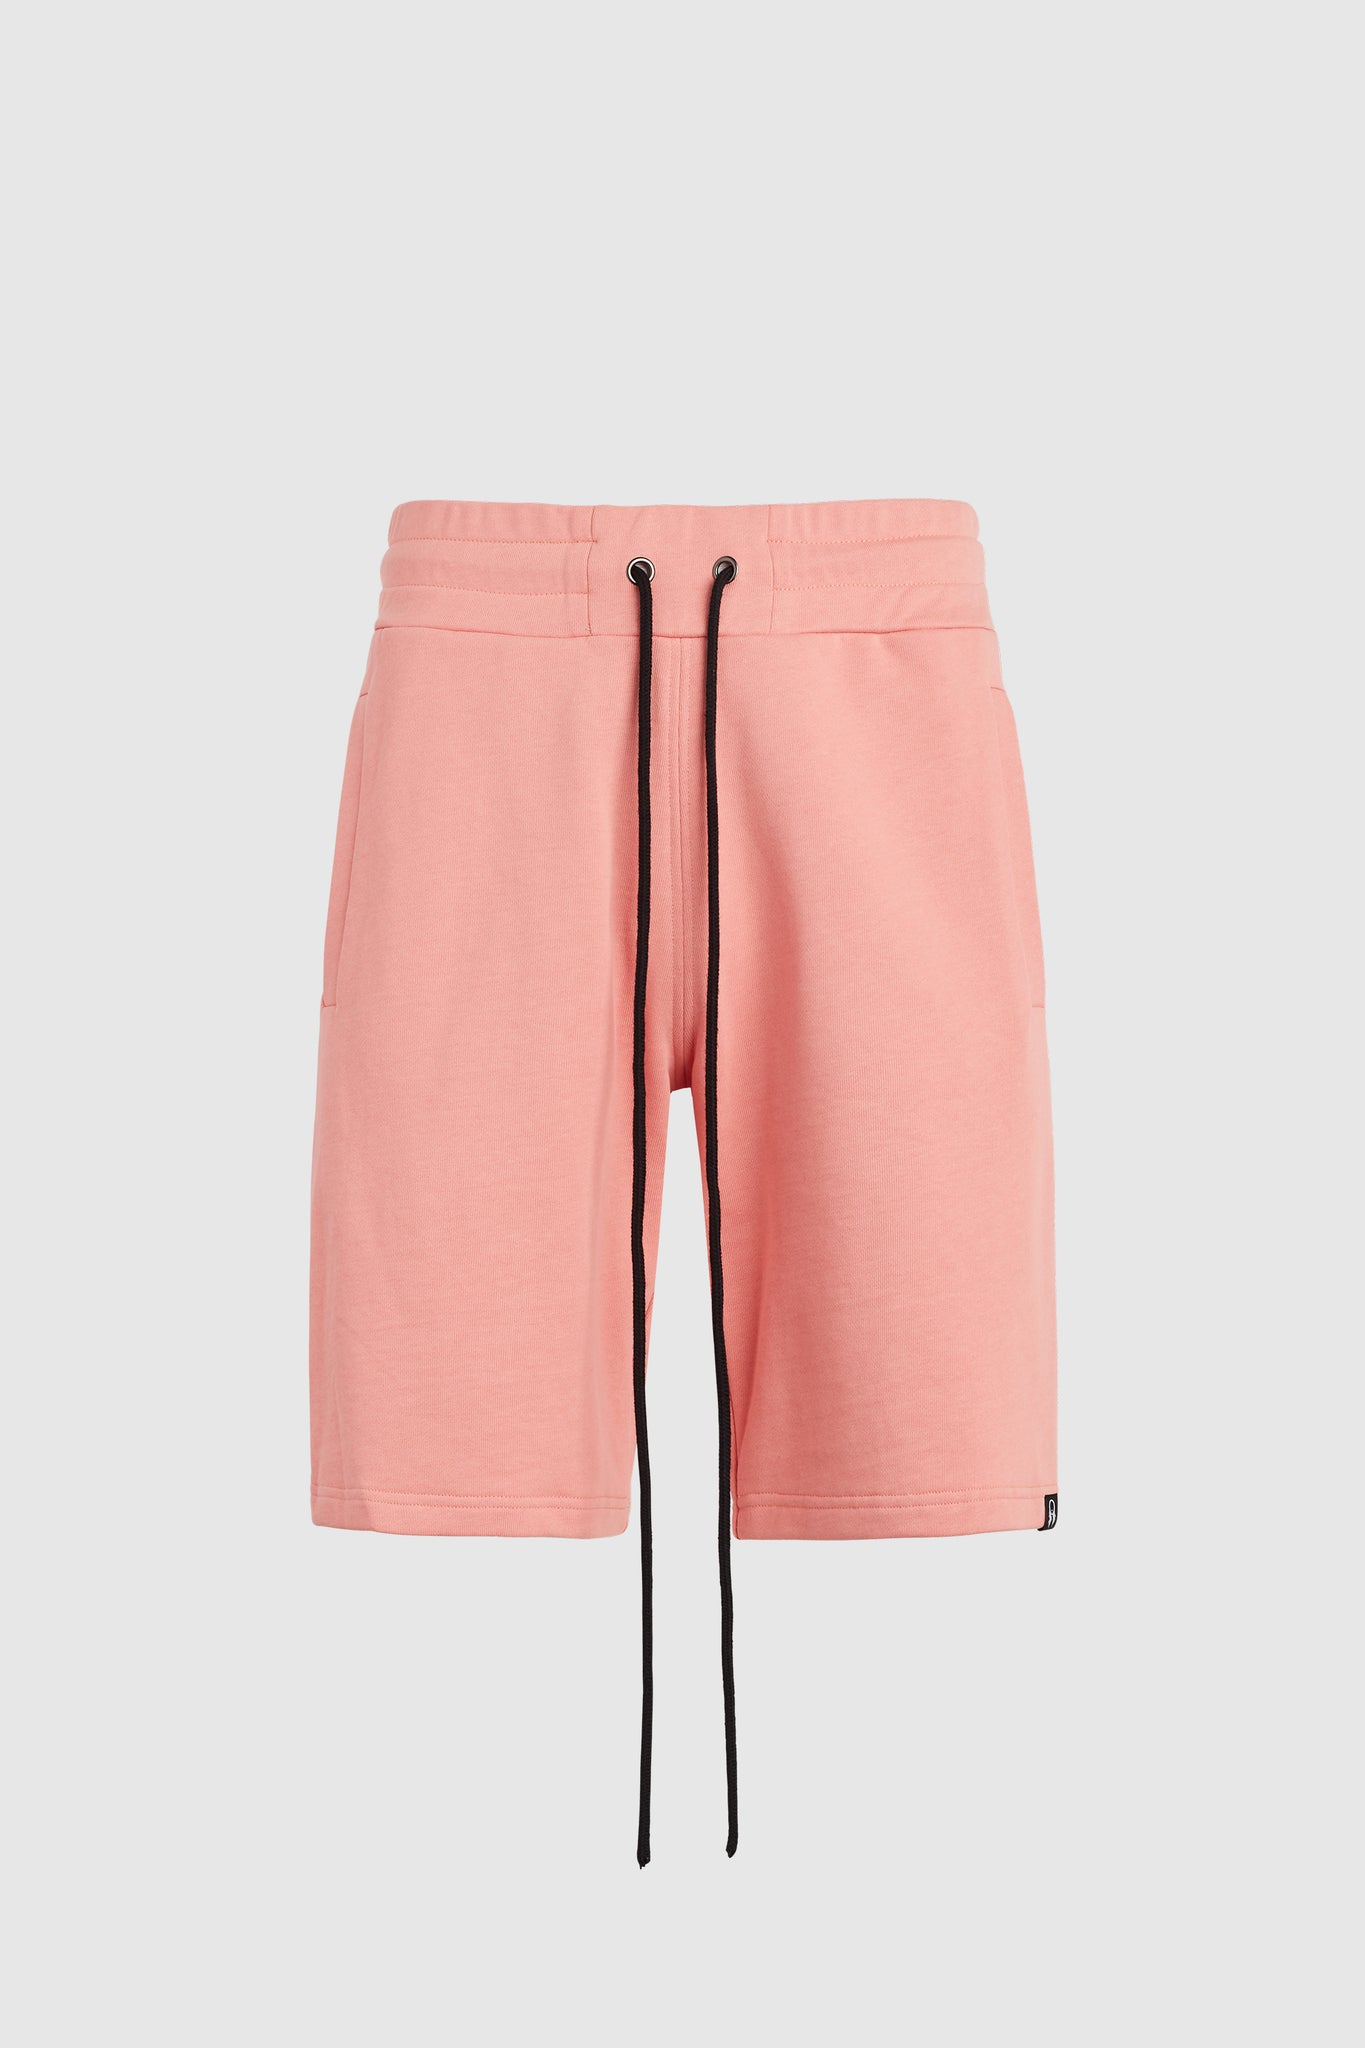 Dim Mak Sweat Shorts - Coral